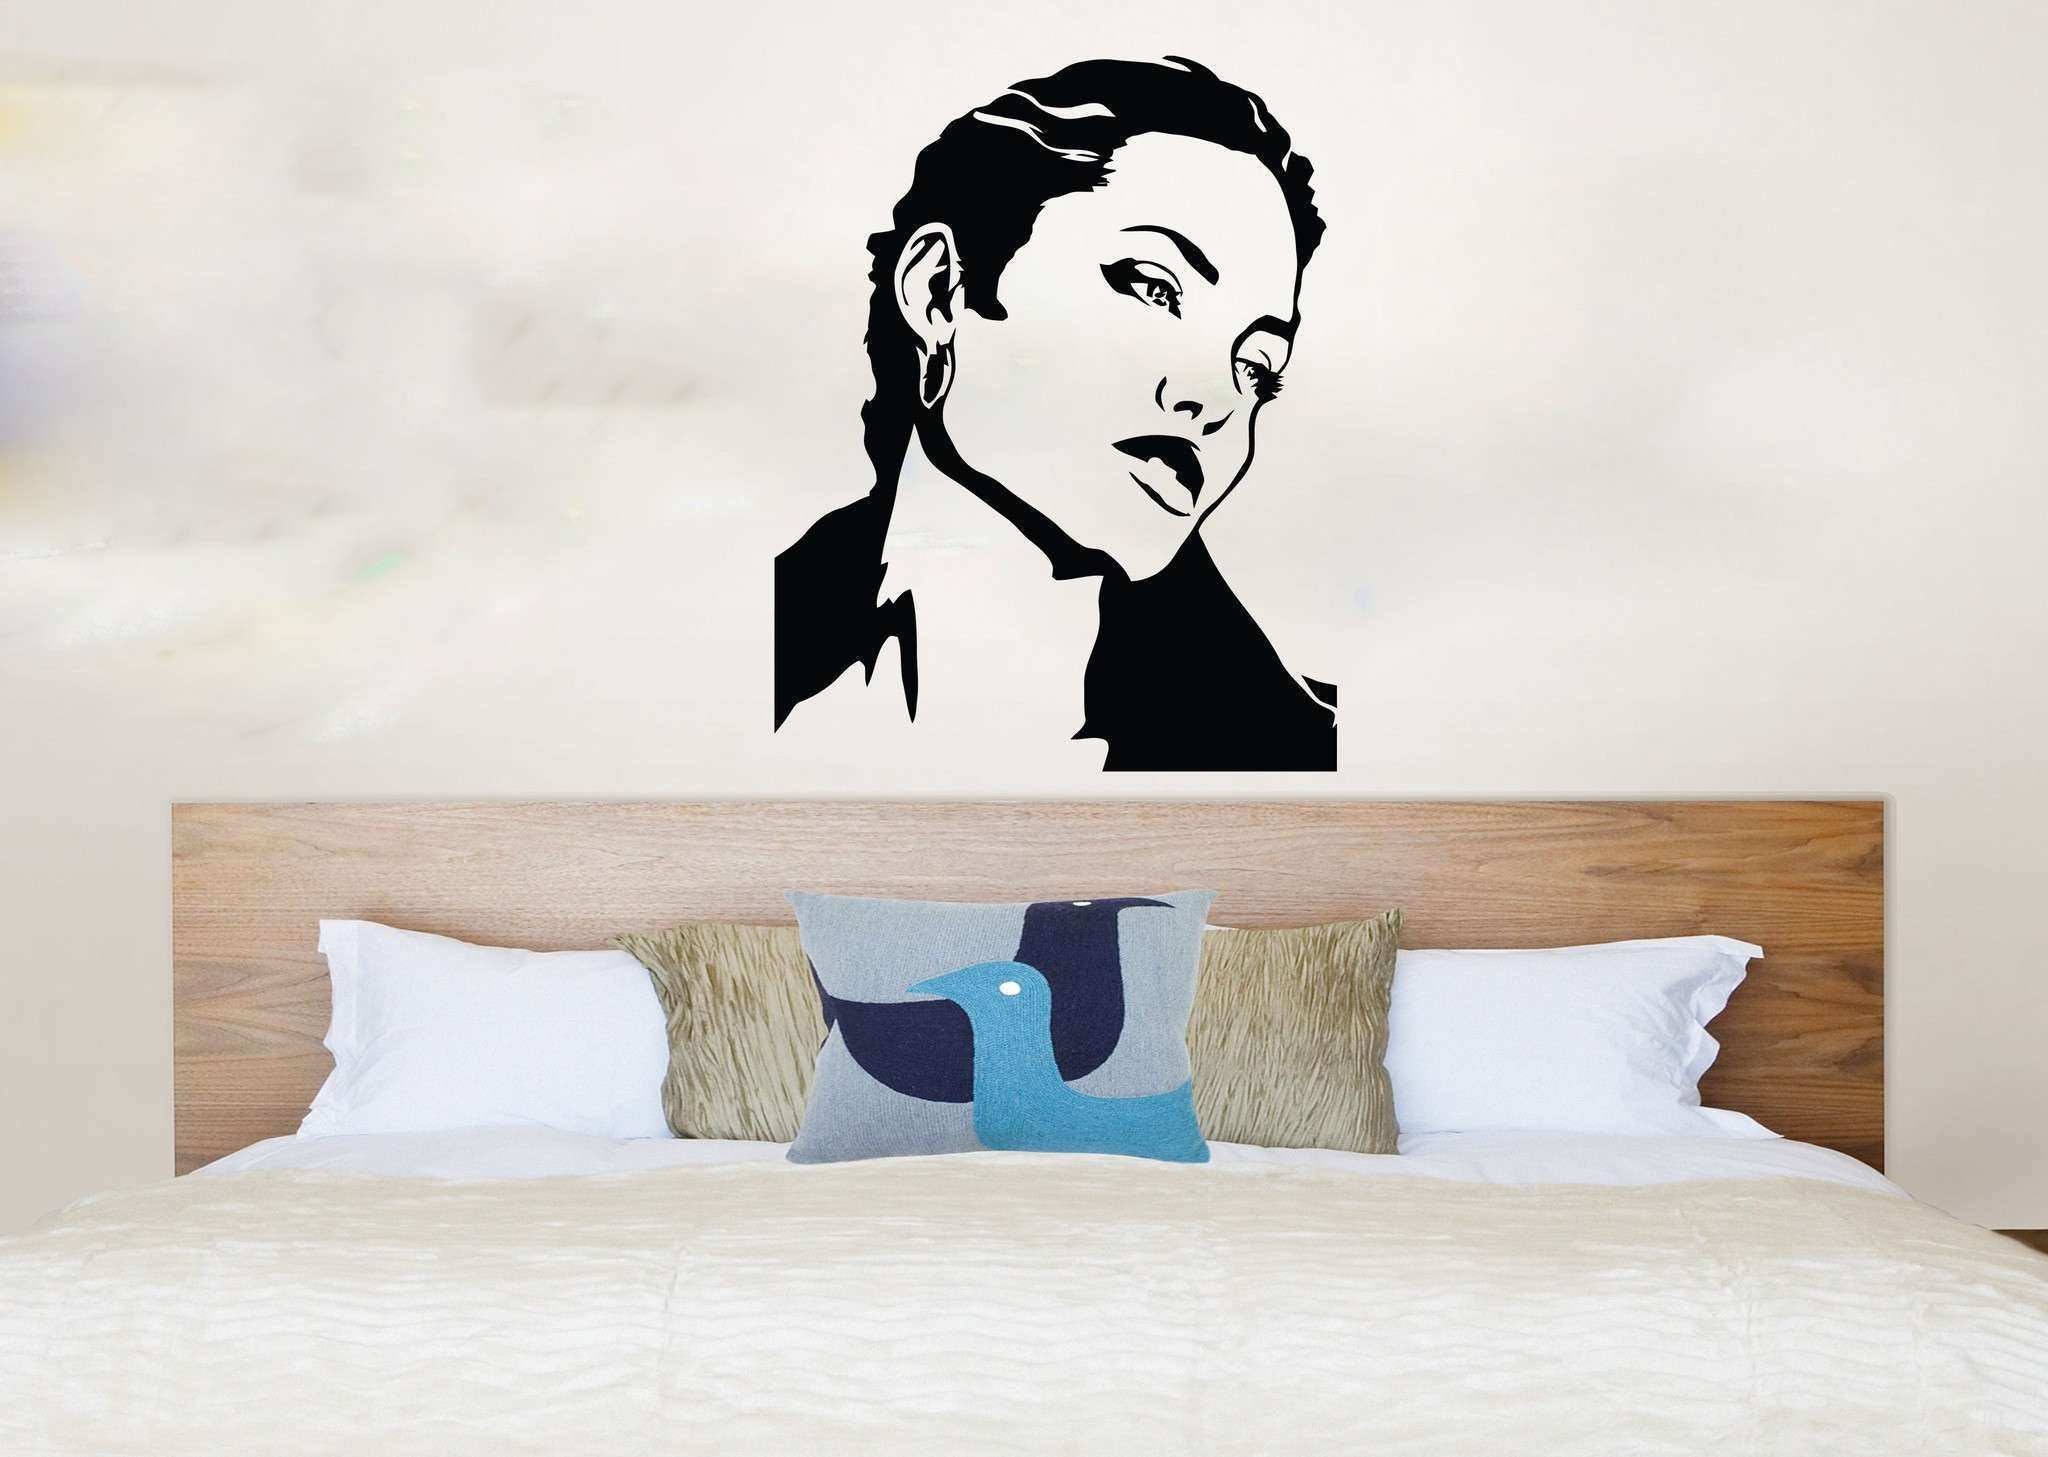 Diy Decor Ideas for Bedroom Lovely Wall Decals for Bedroom Unique 1